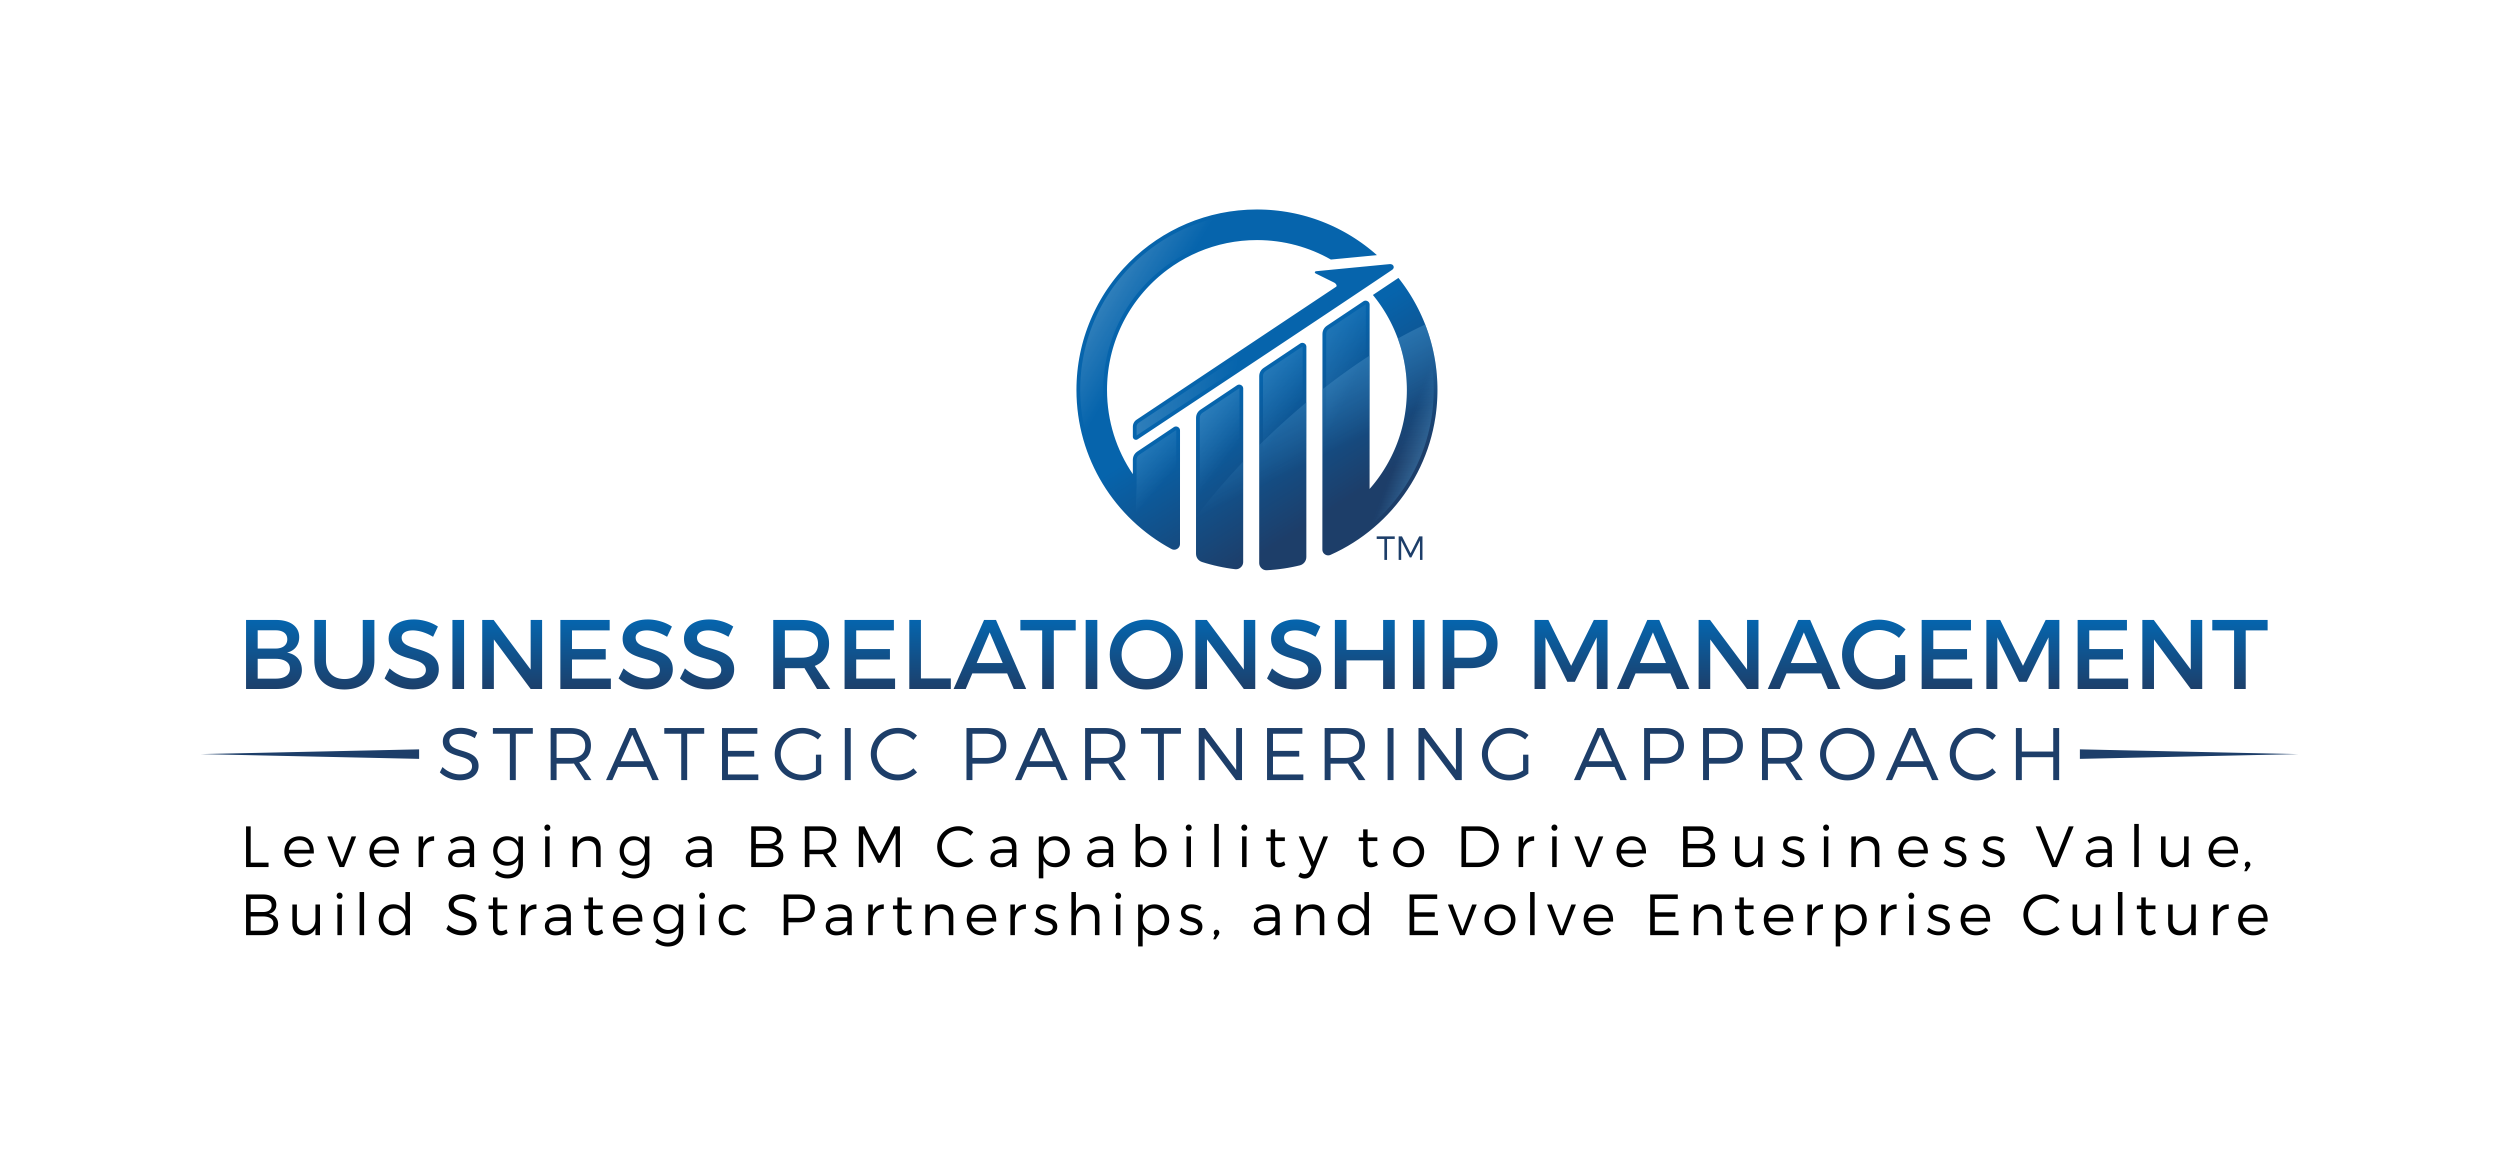 Strategic Partnering Approach Logo